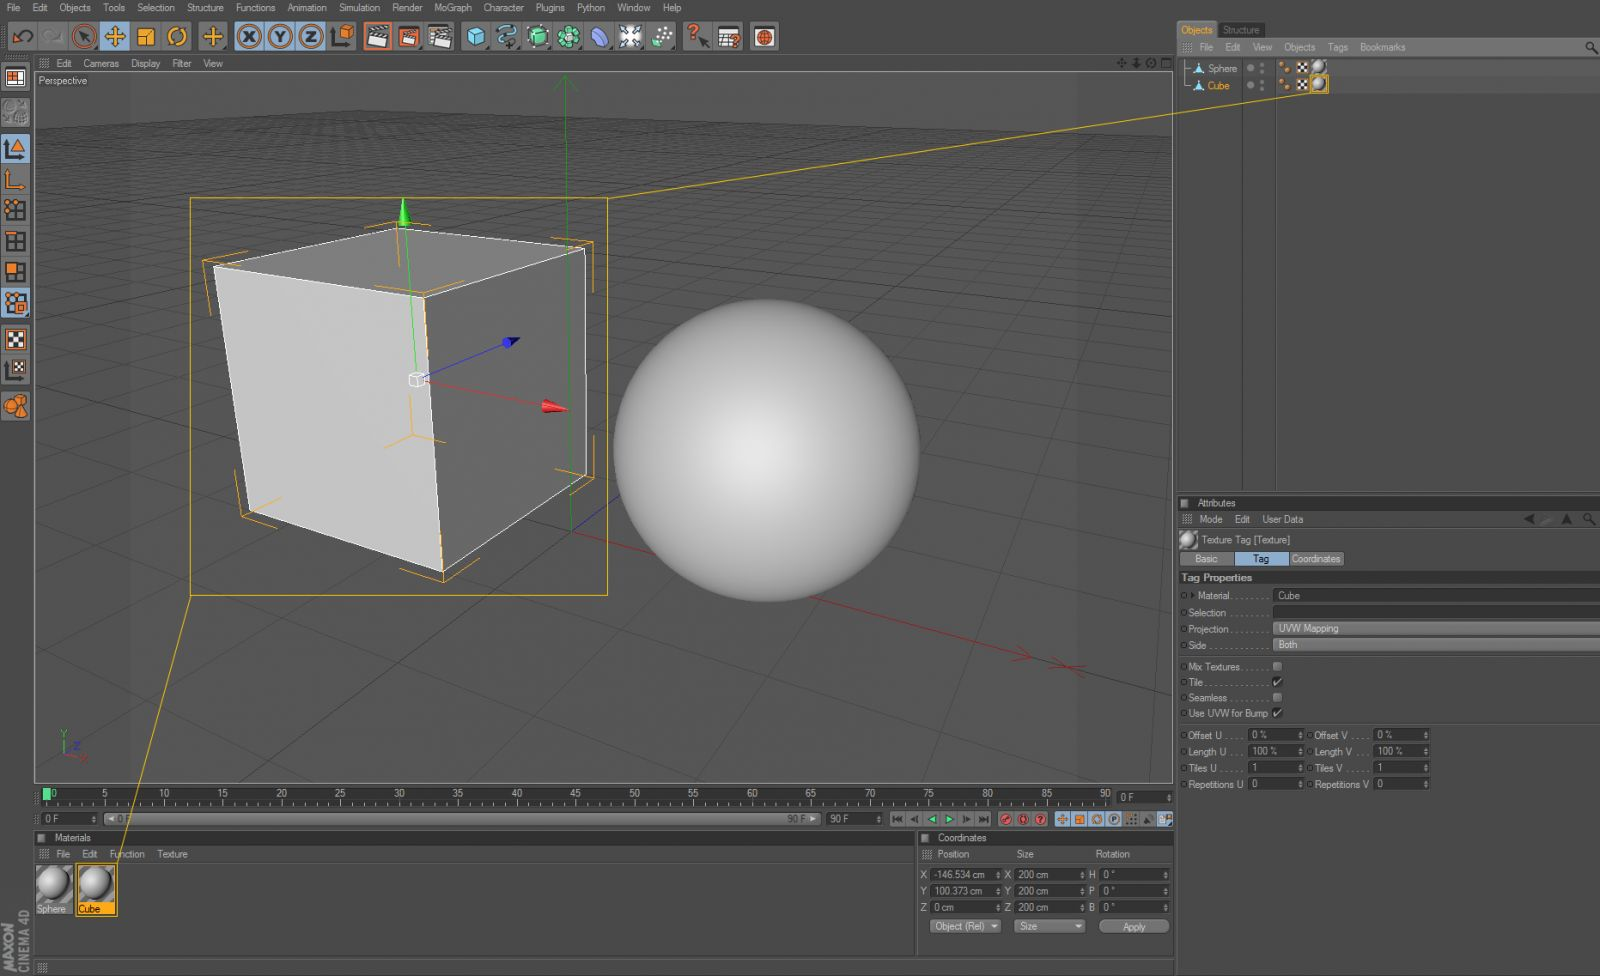 Import C4d Files Into 3ds Max Materials - seventronics